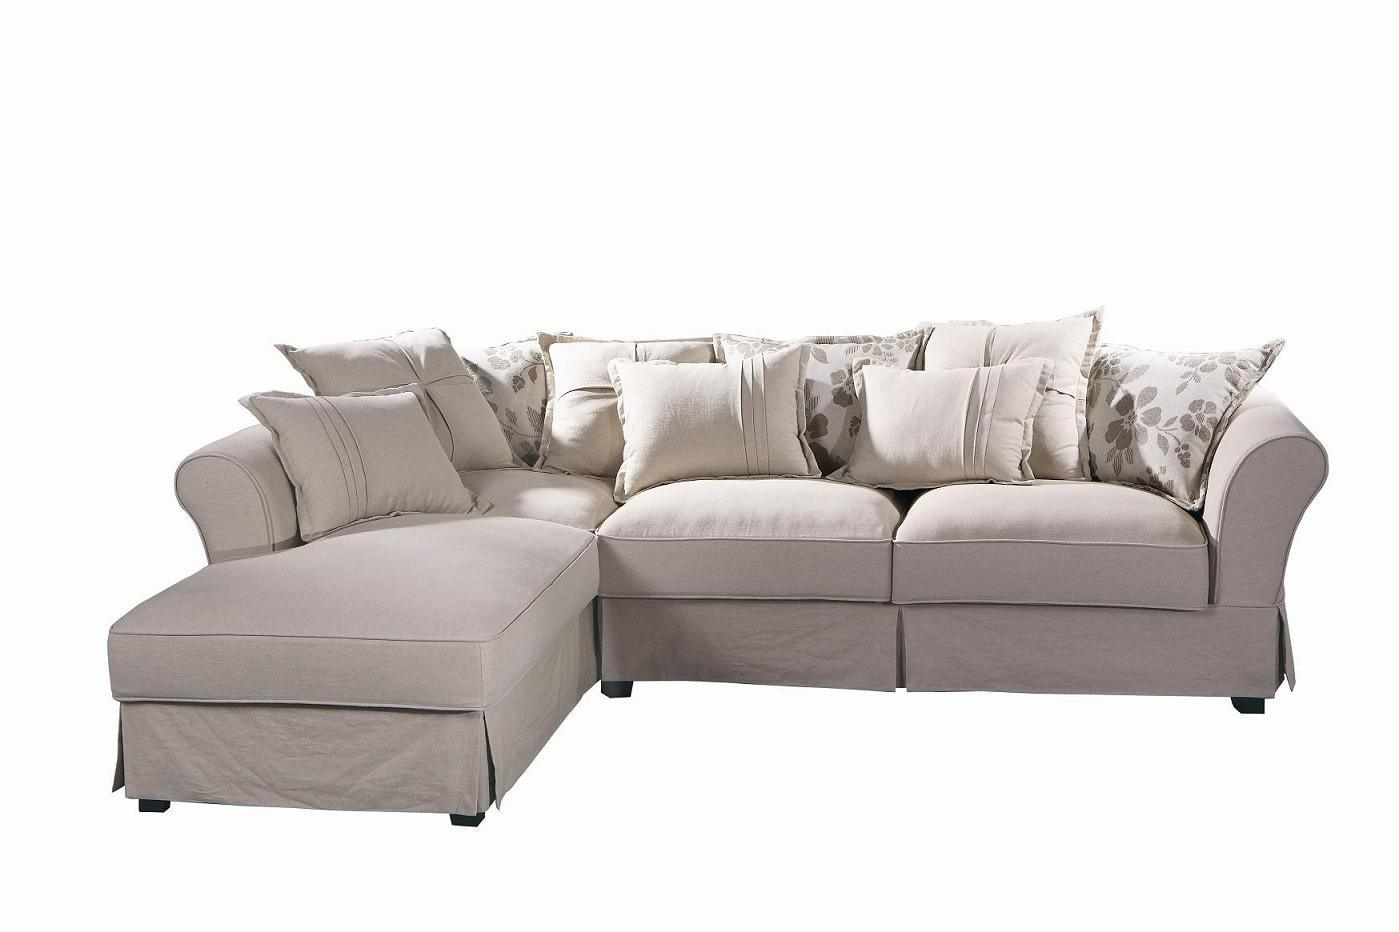 Discount Sofa Slipcovers Cheap Couch Slipcovers At Tattoo Design Bild